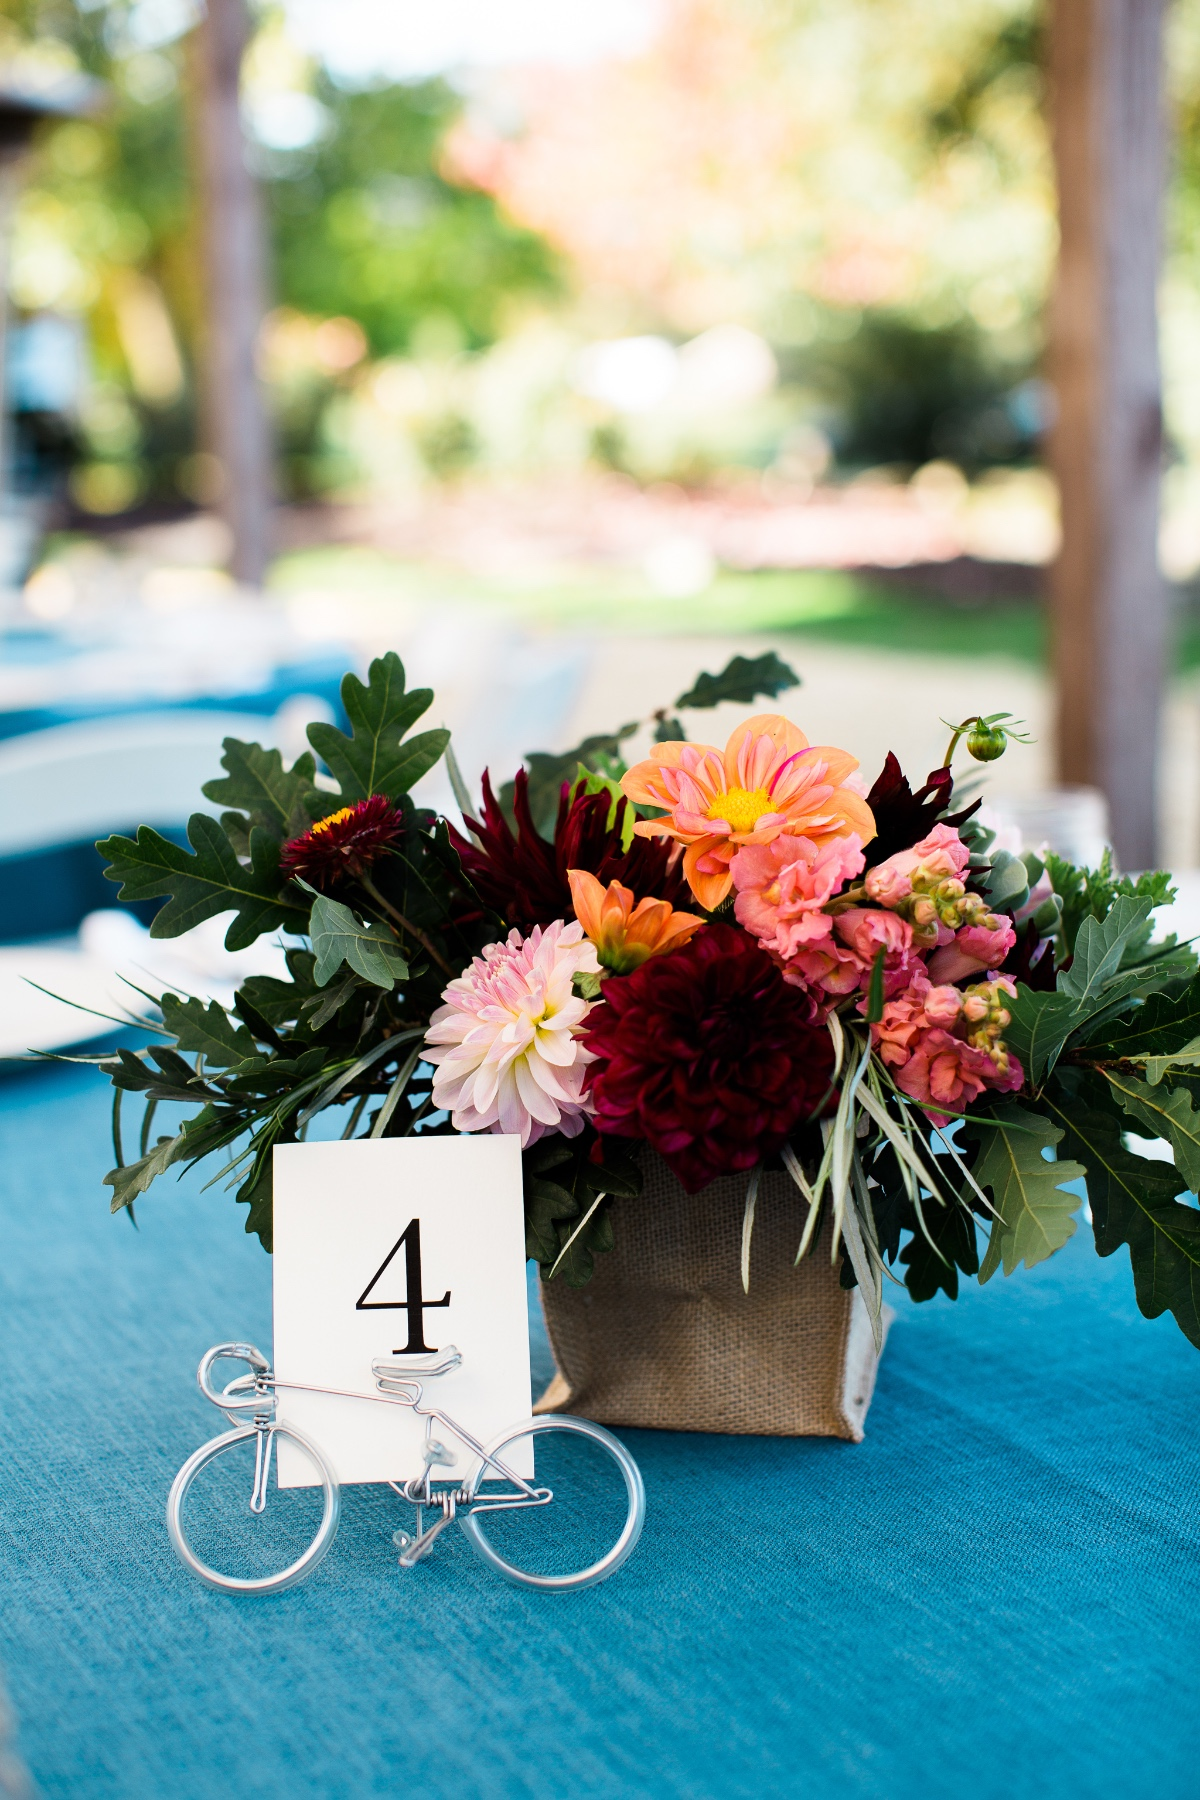 Wedding table decor with a bike